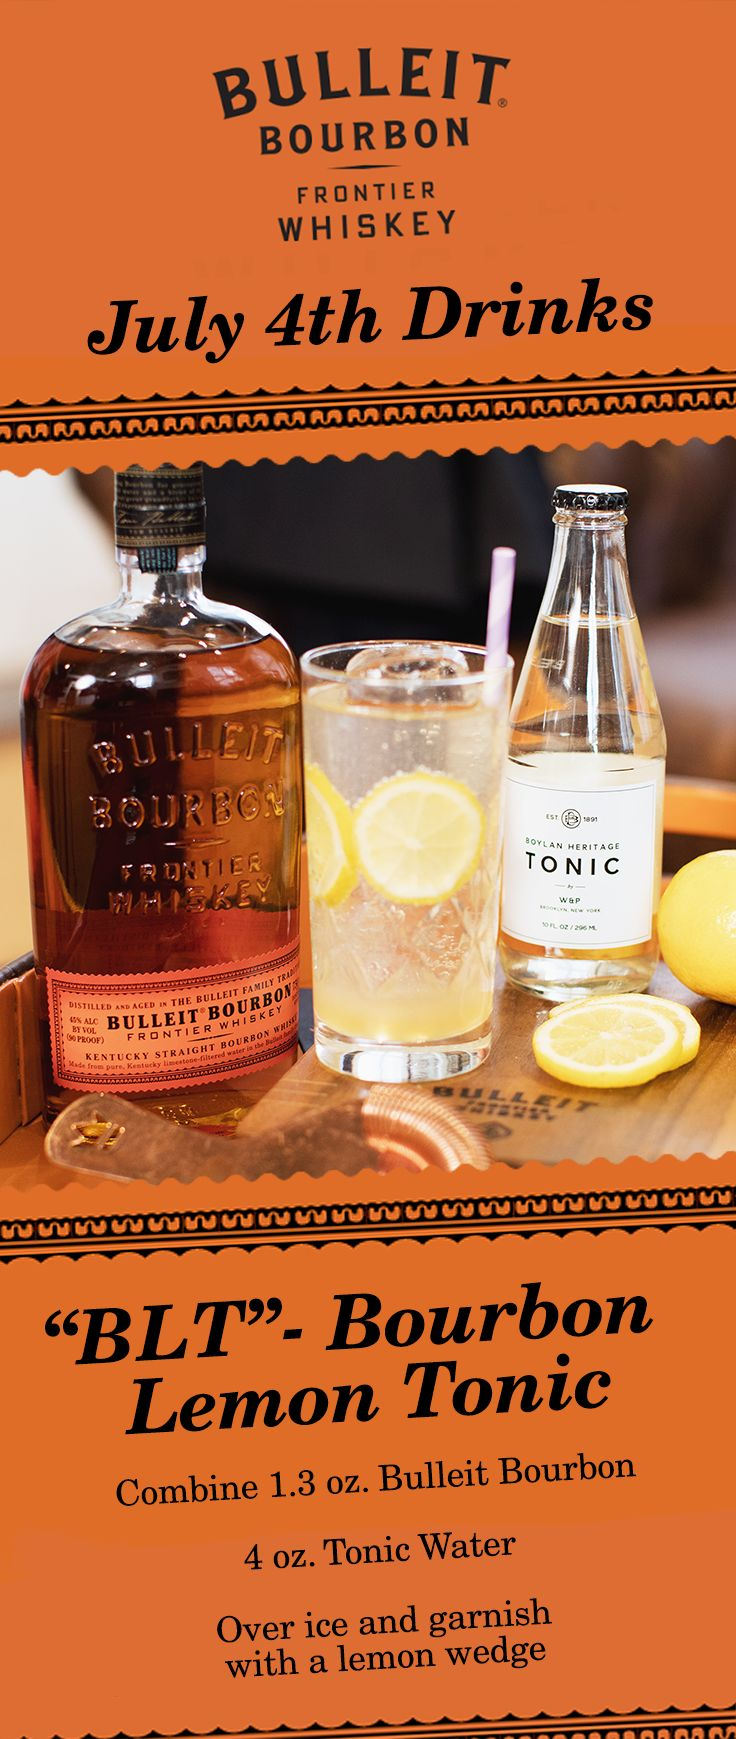 "Celebrate 4th of July with a round of Bulleit ""BLT"" cocktails - Bourbon Lemon Tonic. With just a few ingredients—this simple and fresh cocktail is great for a hot summer day. Whether you're having a BBQ with friends or relaxing with family, everyone will enjoy this ice cold mixed drink."